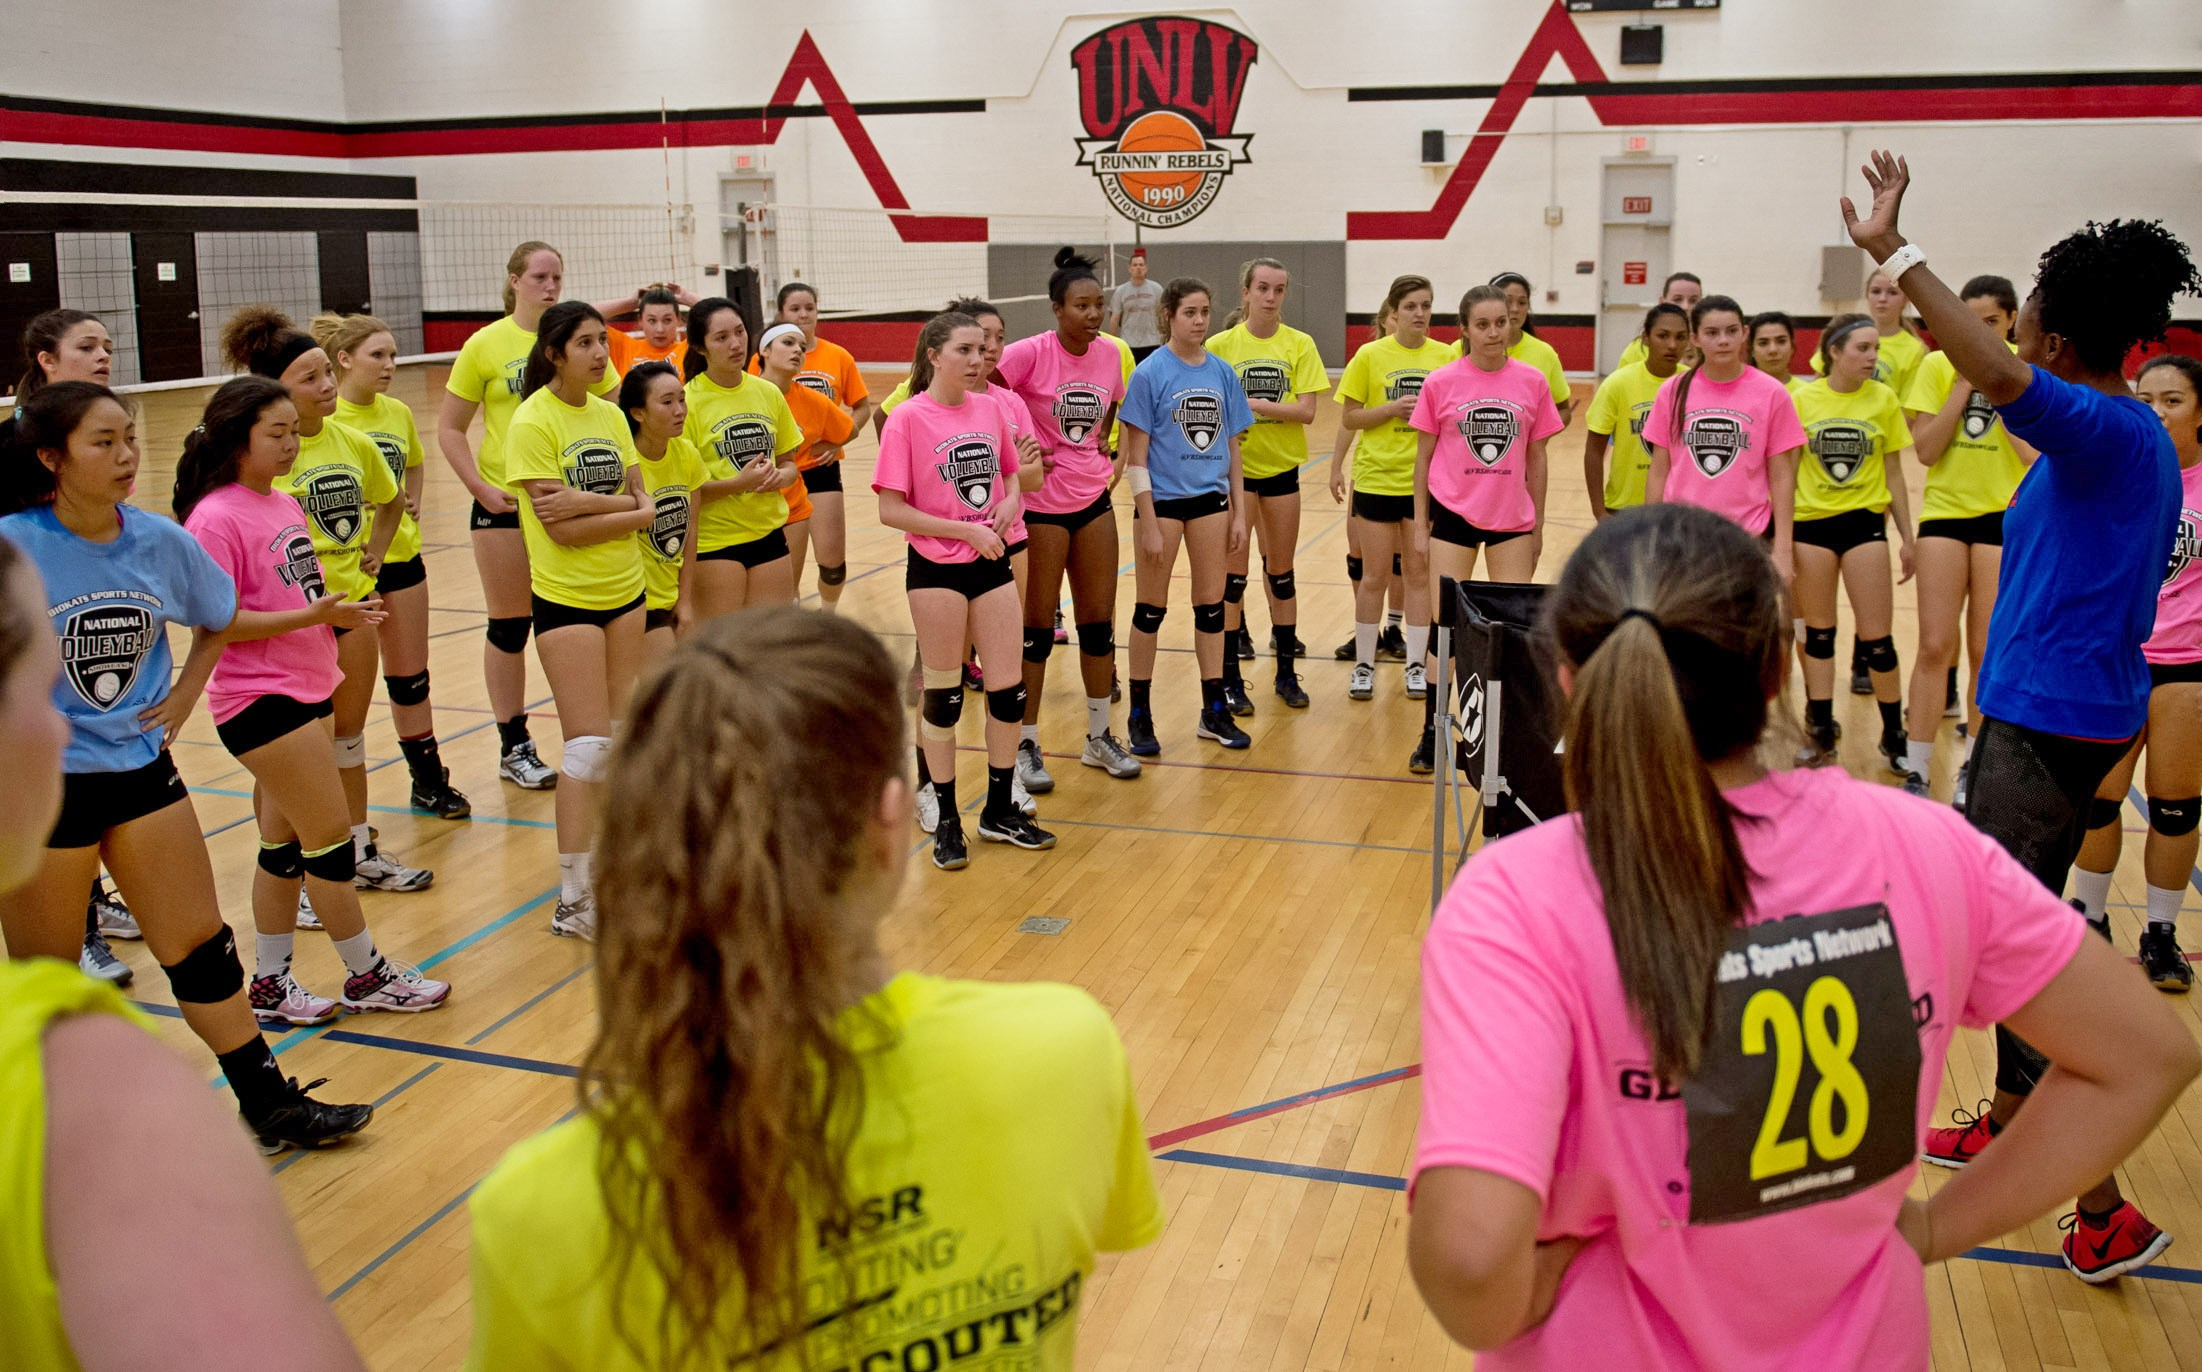 National Volleyball Showcase | #1 Volleyball Showcase and Combine in